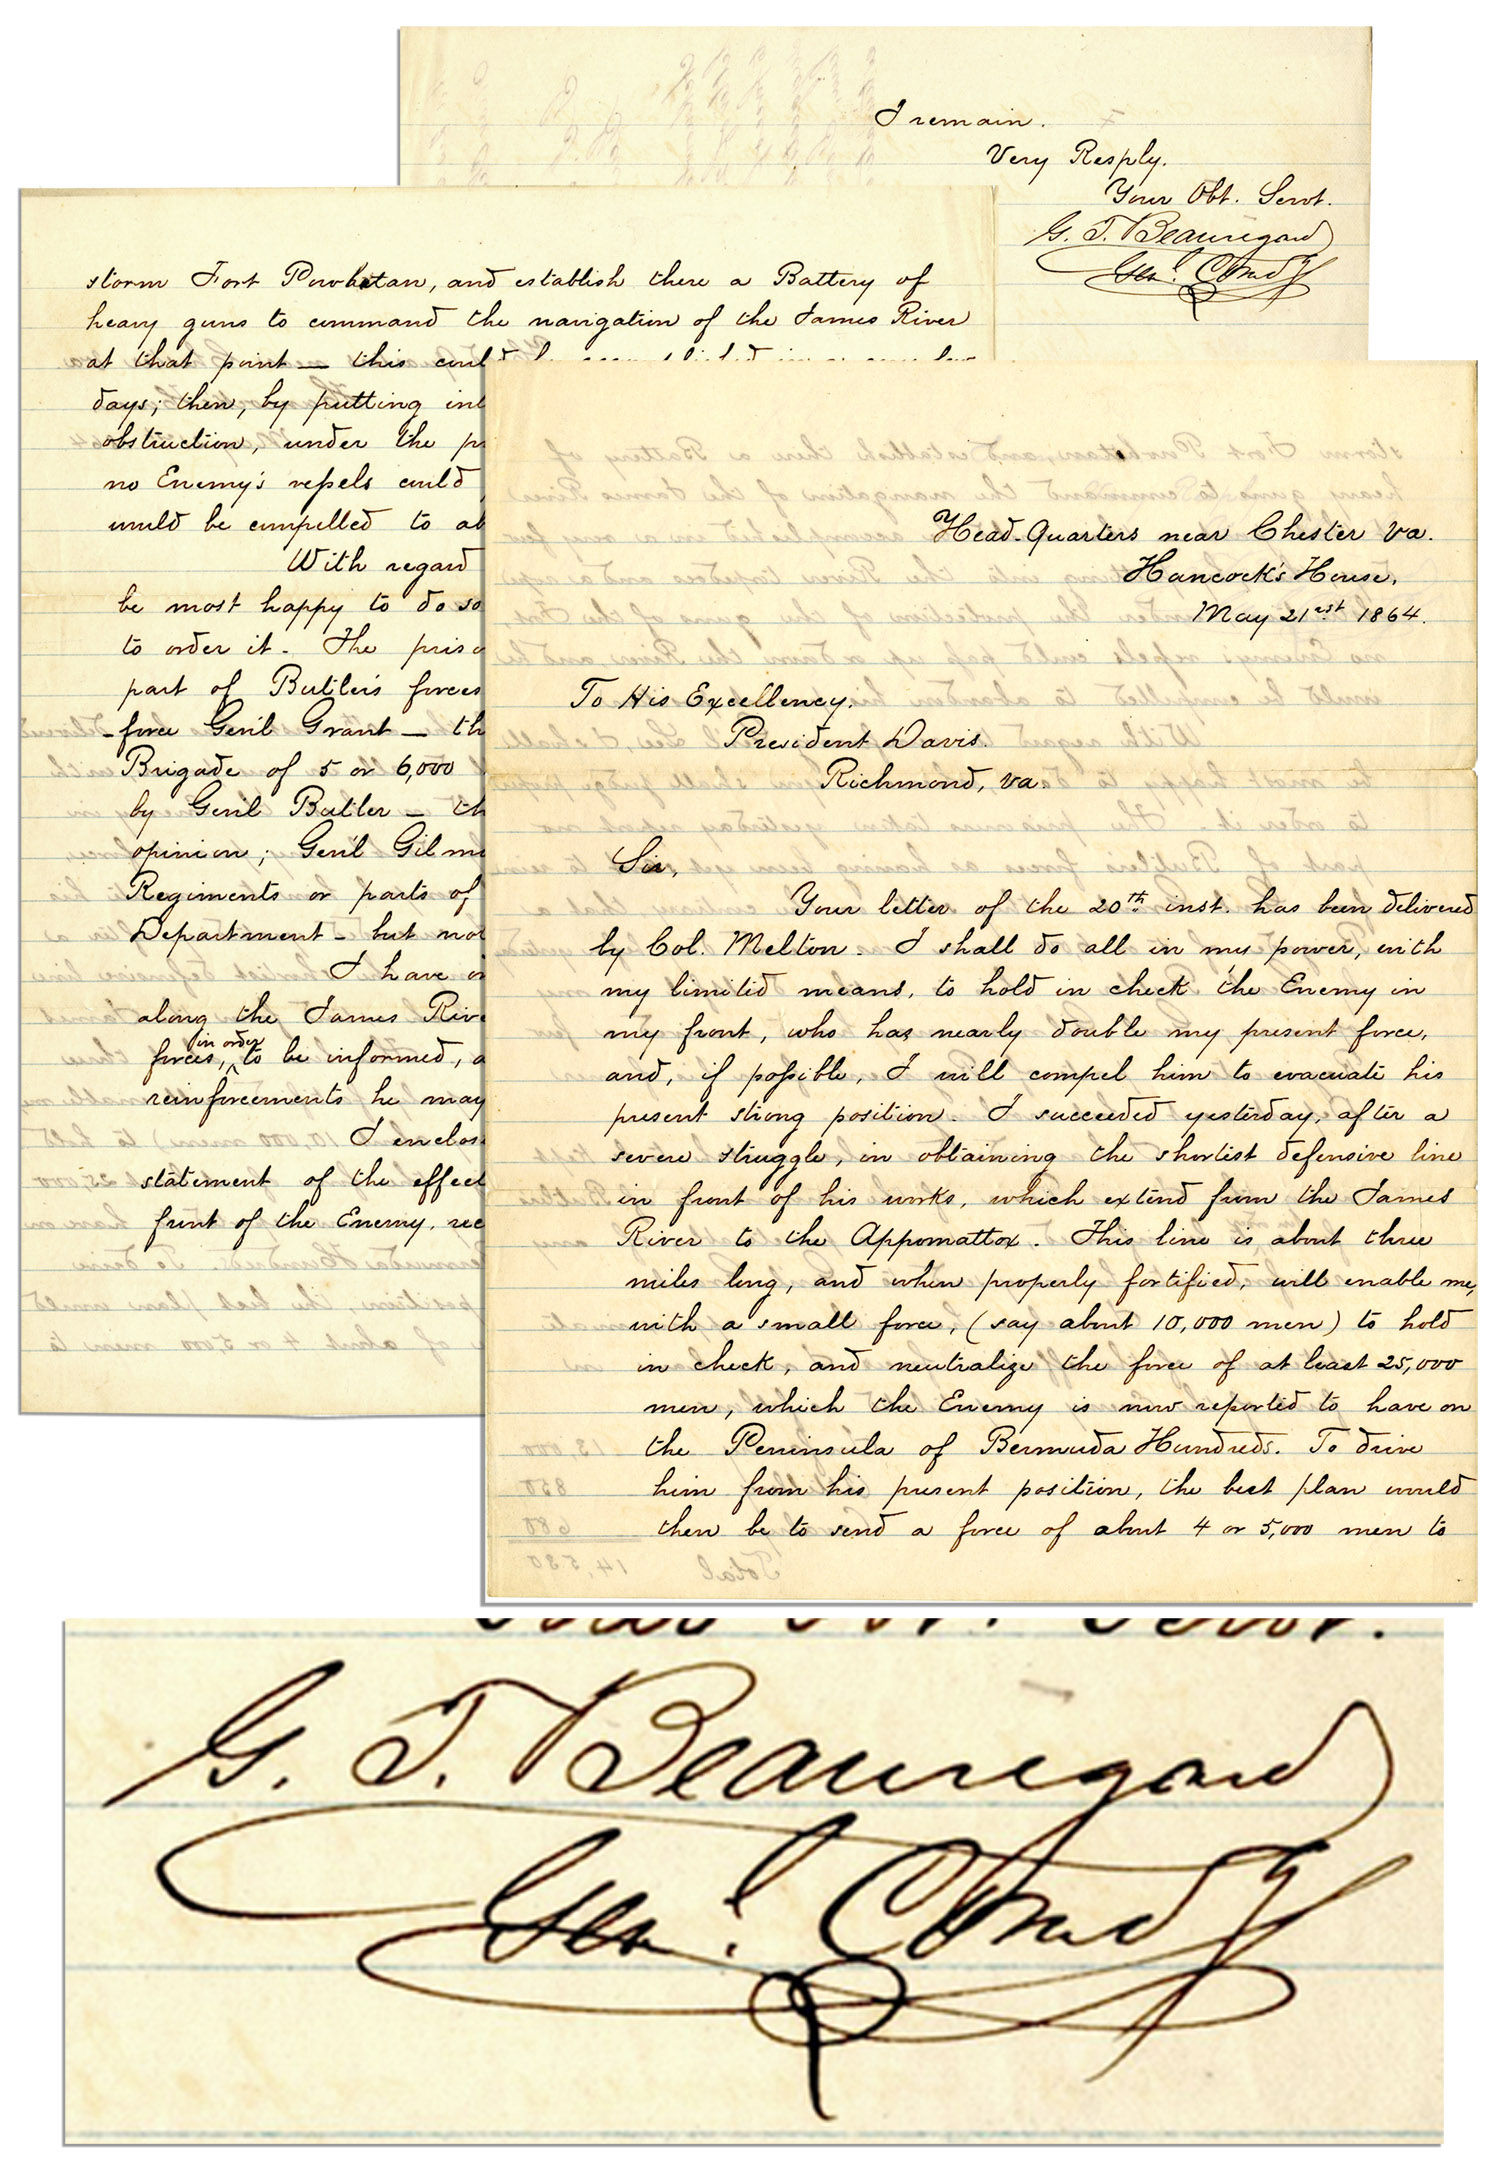 P.G.T. Beauregard Autograph General Beauregard 1864 Letter Signed to Jefferson Davis -- ''...send a force of...4 or 5,000 to storm Fort Powhatan and...command...the James River...'' -- One Day After Bermuda Hundred